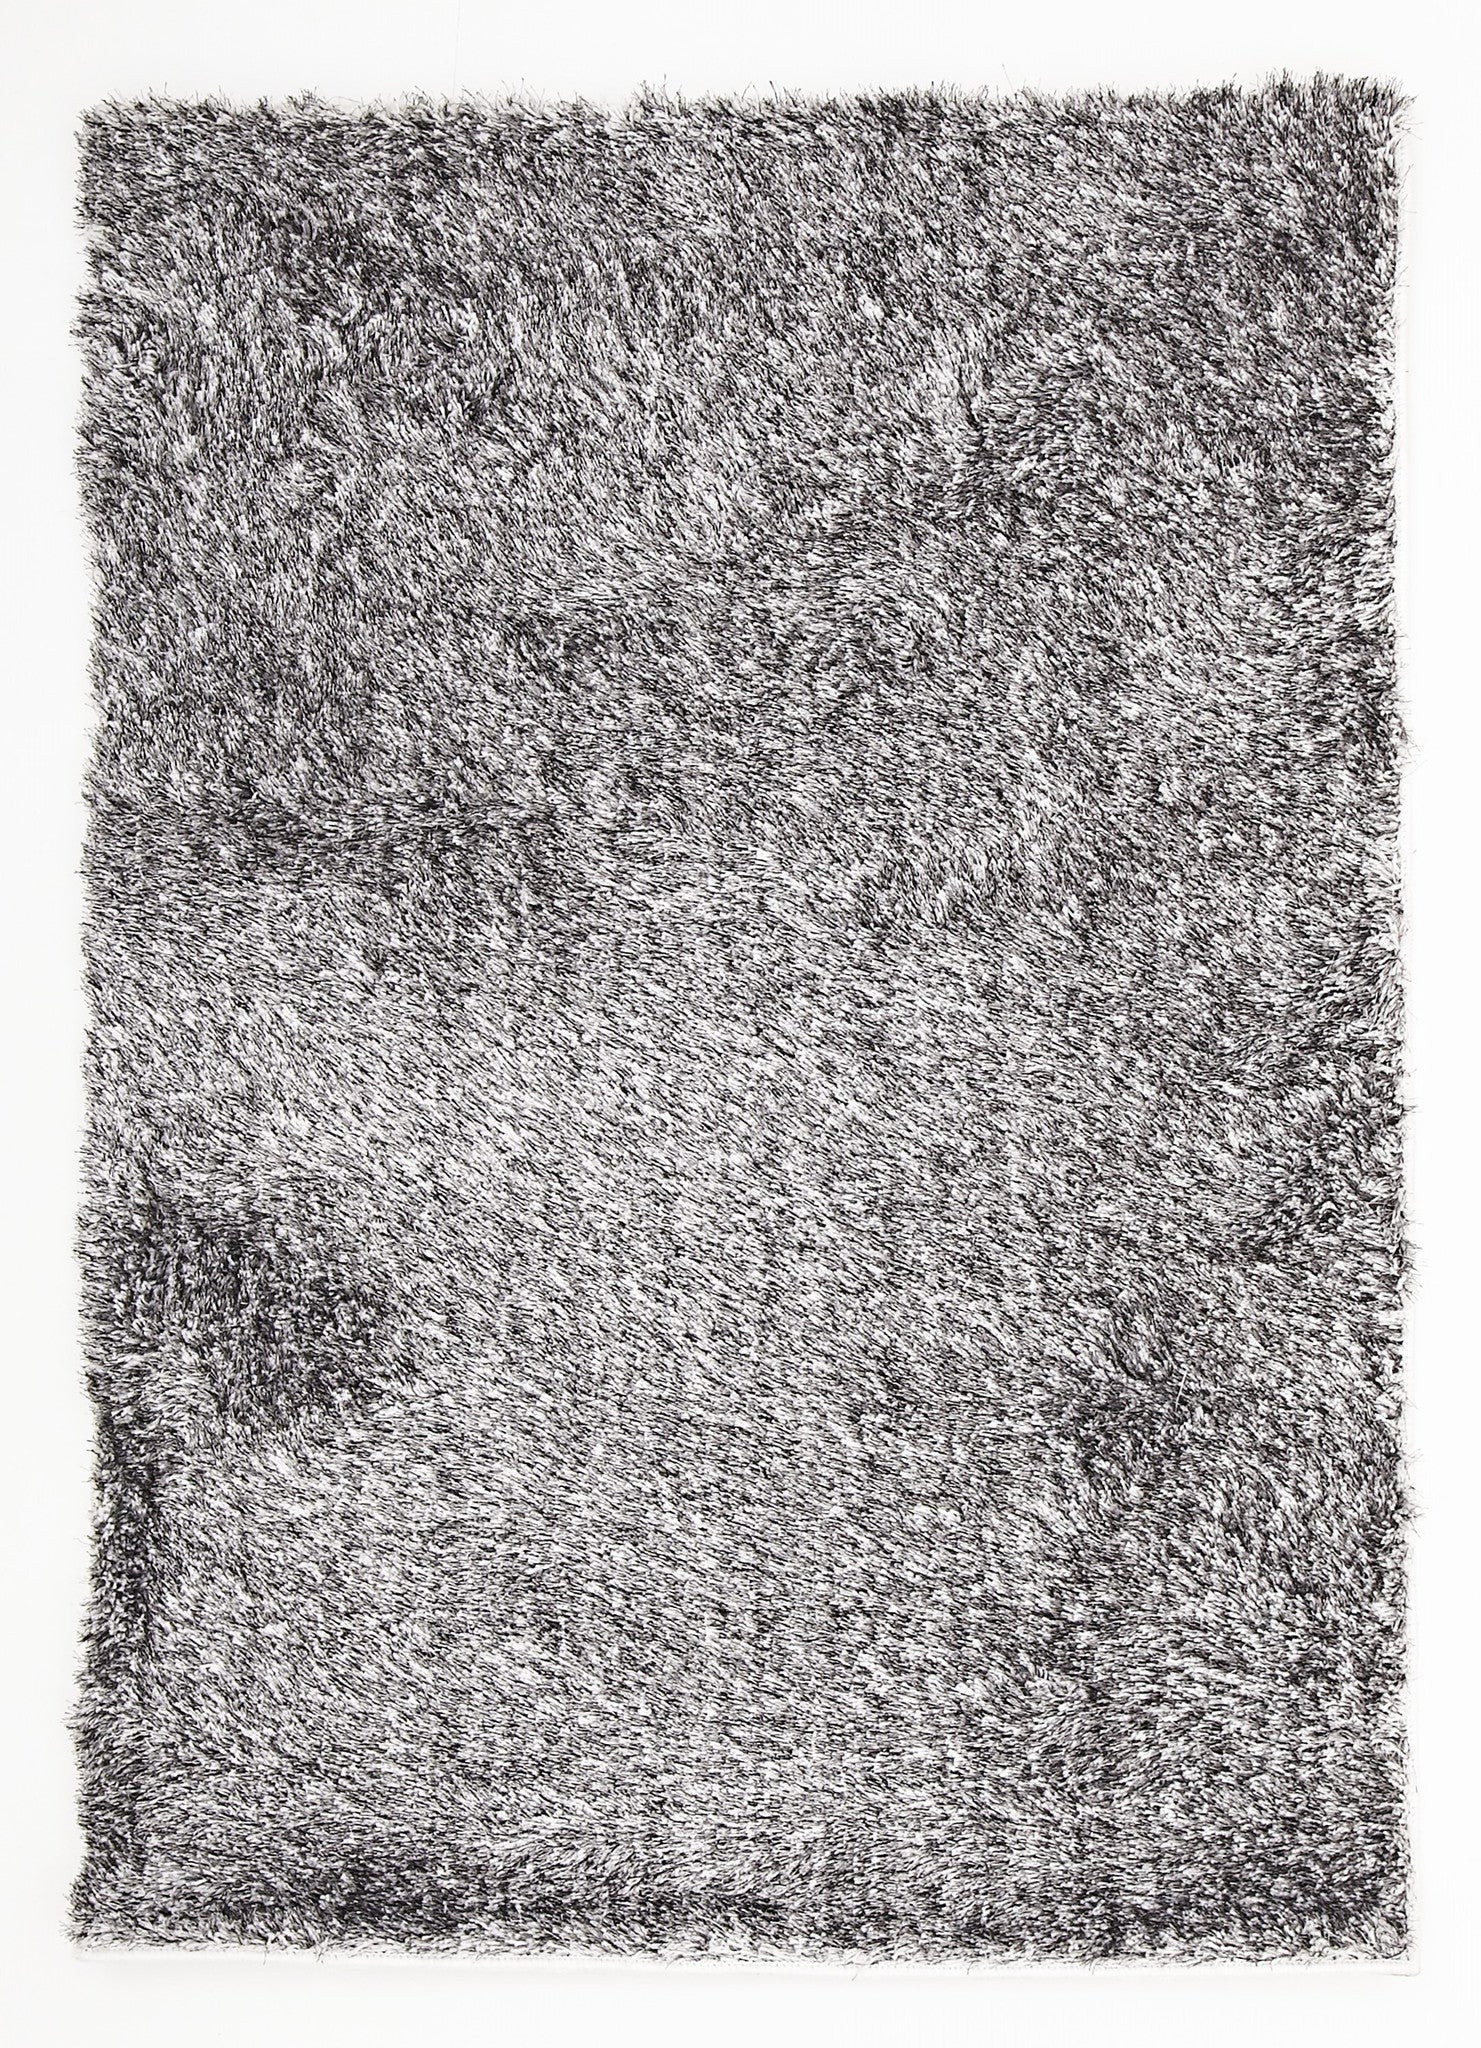 free floor grey rugs image area long talk shipping shag yak dark rug fibers close shaggy very